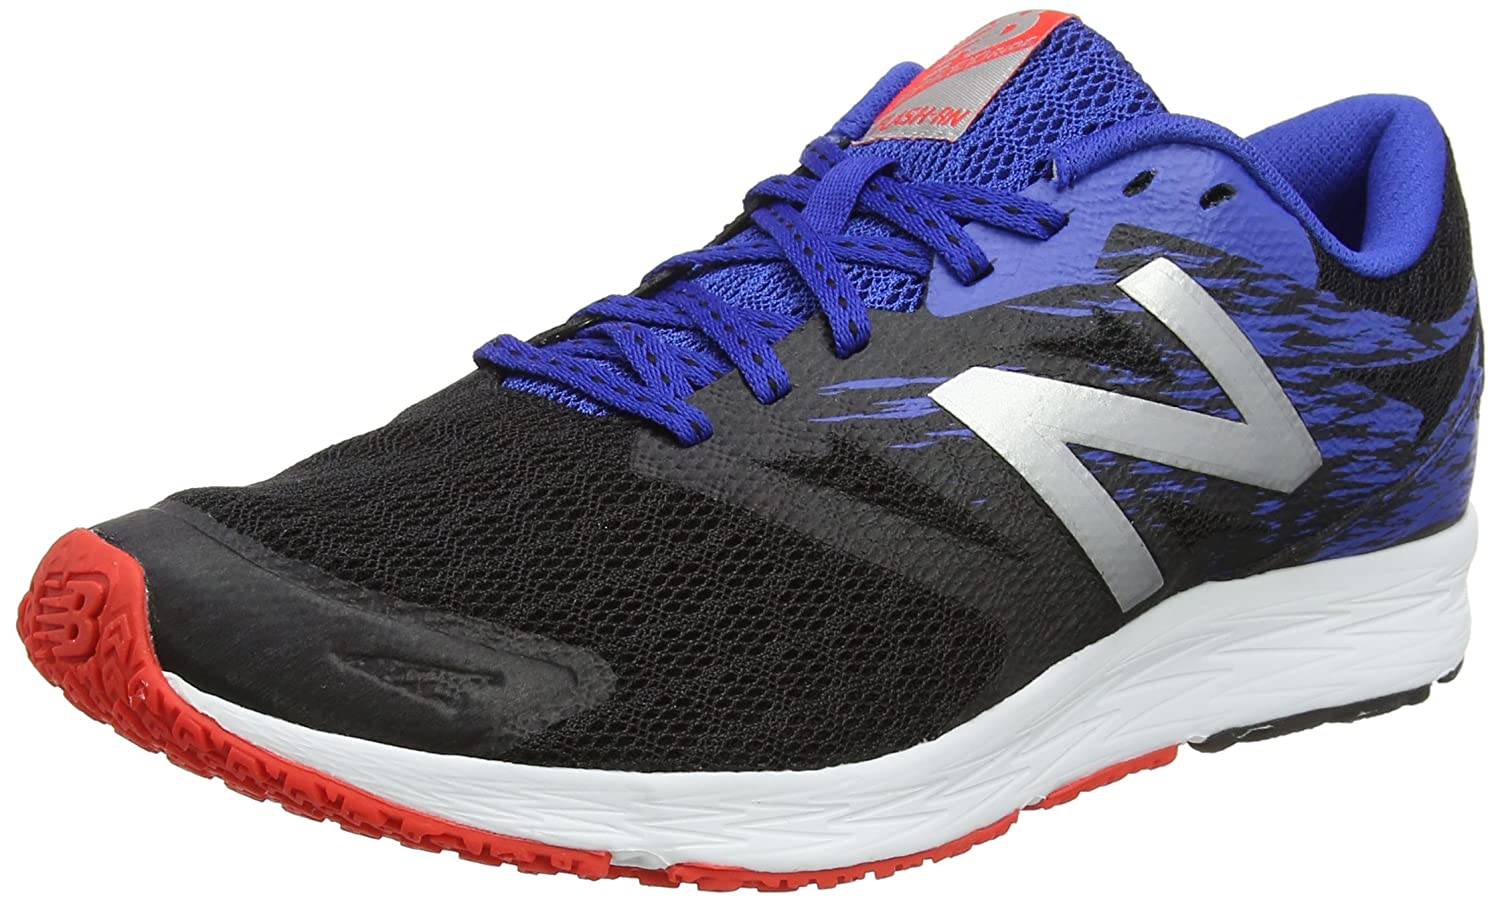 Black blueee 8 D(M) US New Balance Mens Flash V1 Running shoes